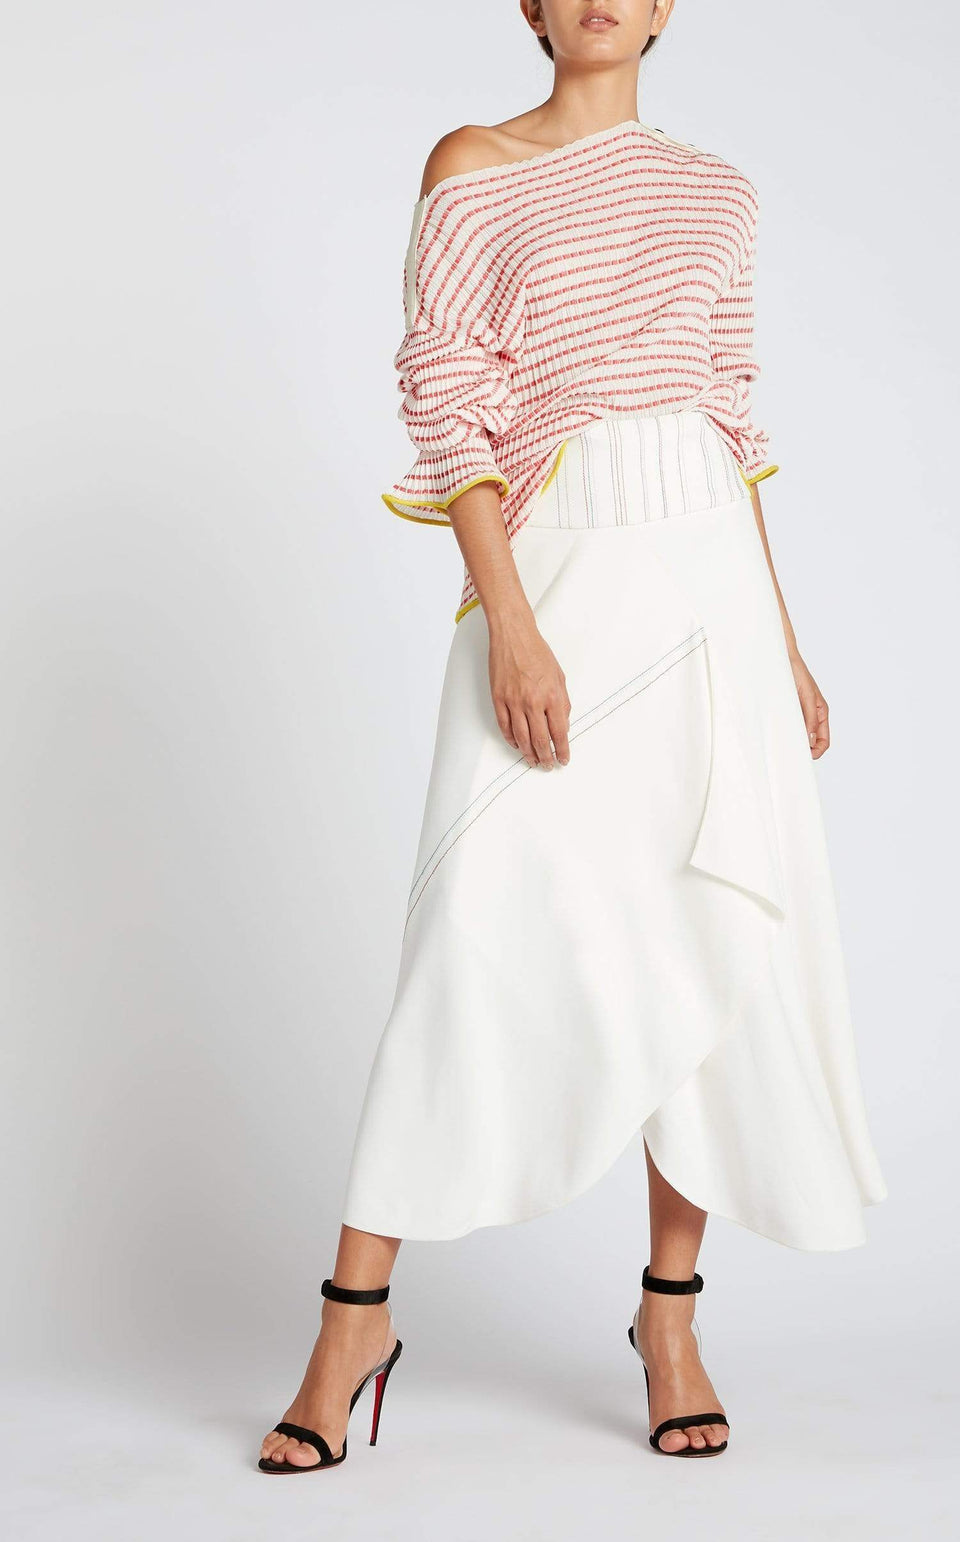 Hurst Skirt In White Multi from Roland Mouret